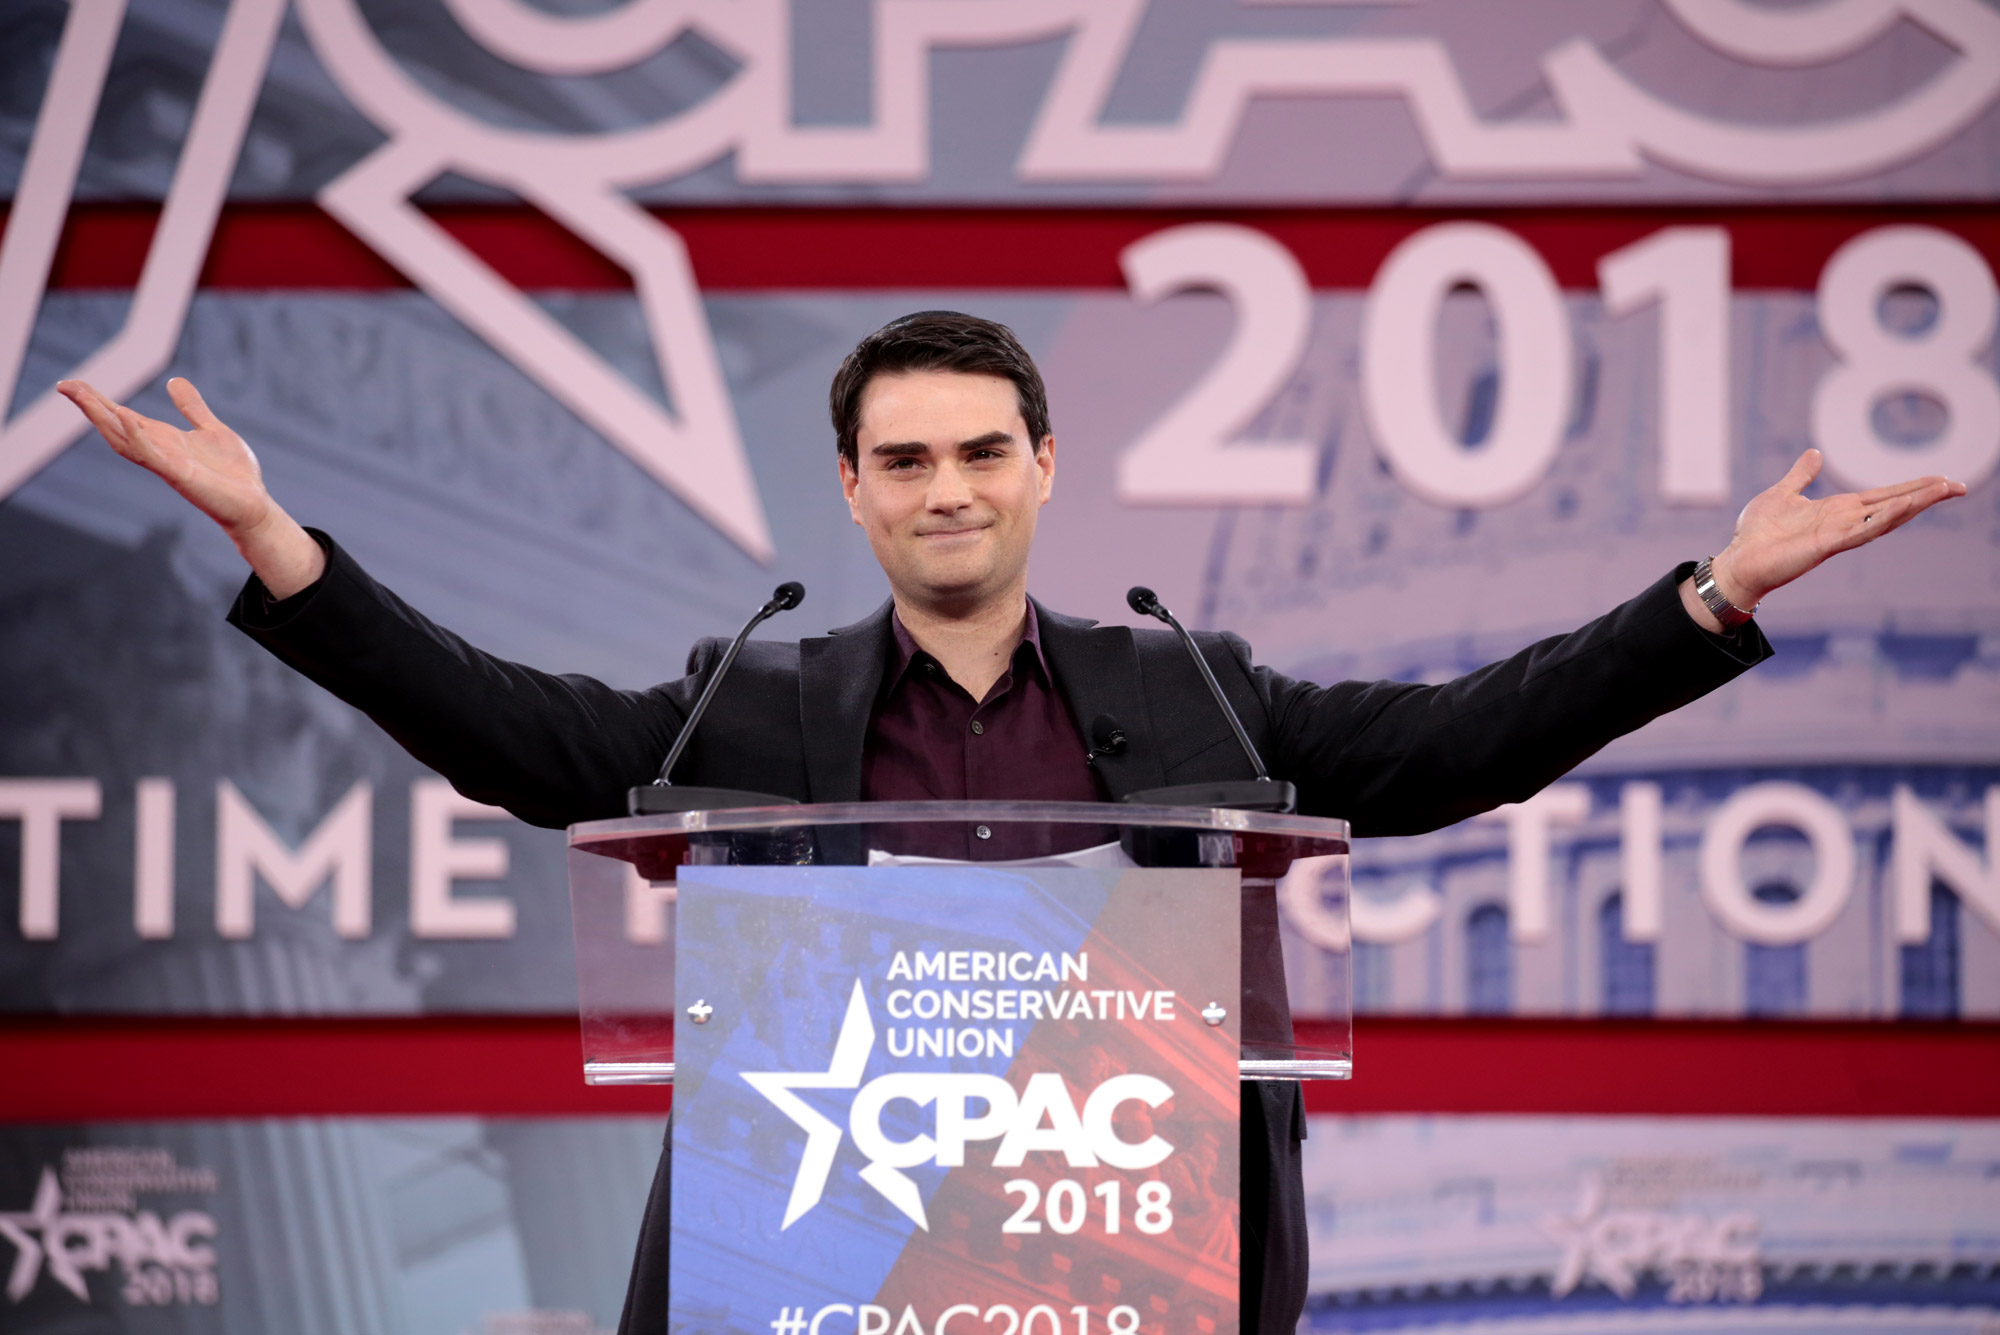 Ben Shapiro speaking at the 2018 Conservative Political Action Conference (CPAC) in National Harbor, Maryland.